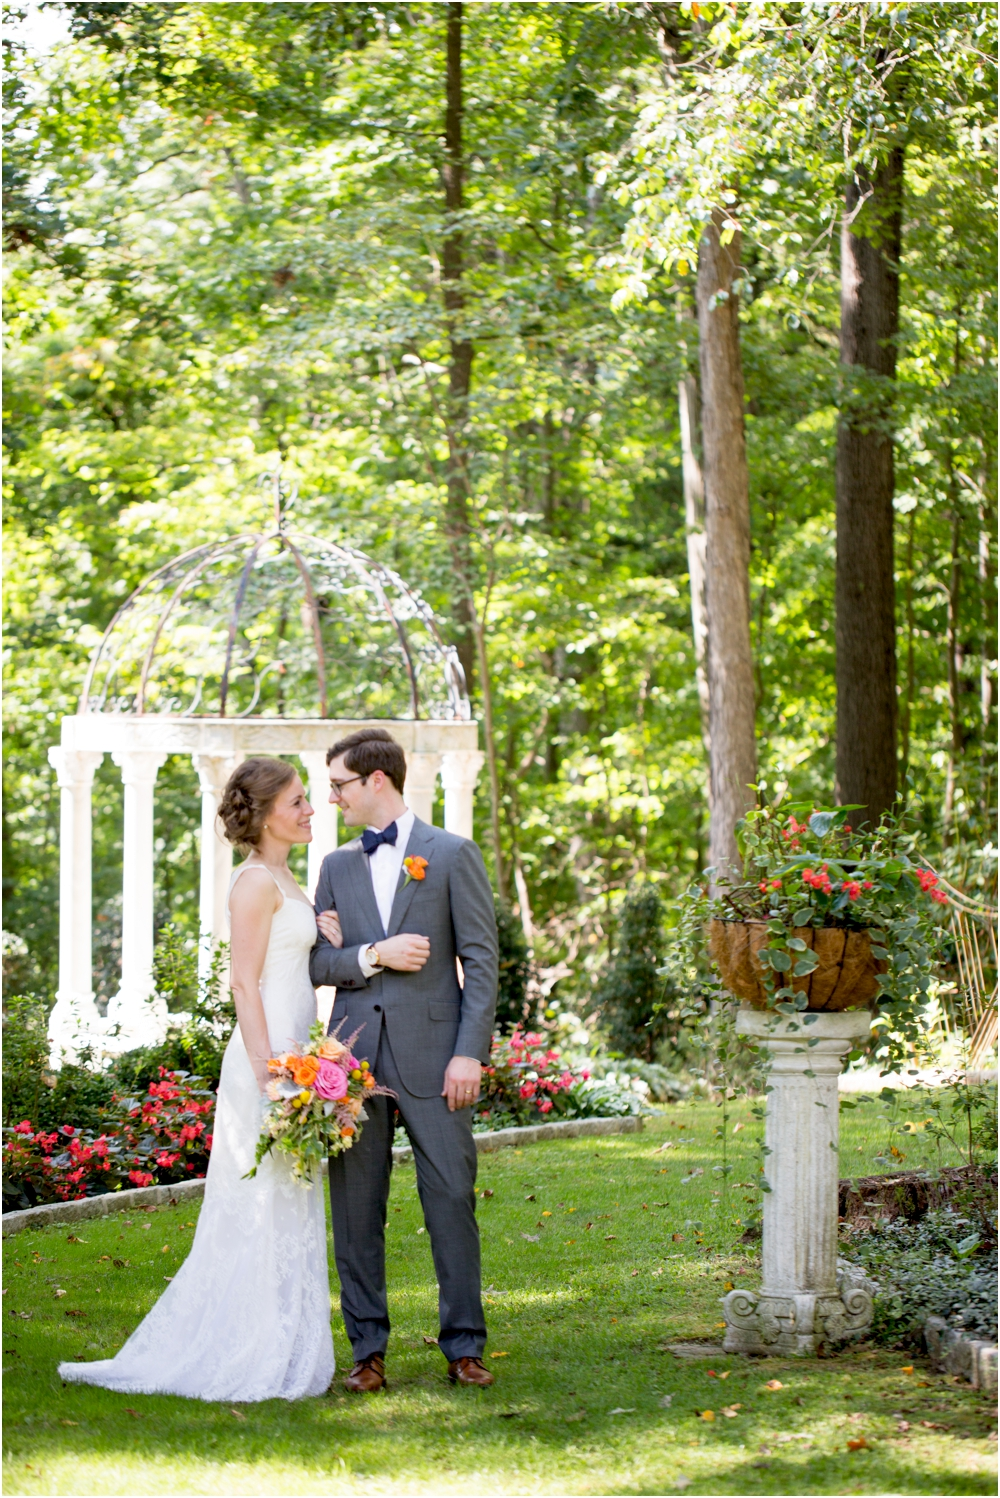 daniel chrissy gramercy mansion outdoor garden wedding living radiant photography_0116.jpg